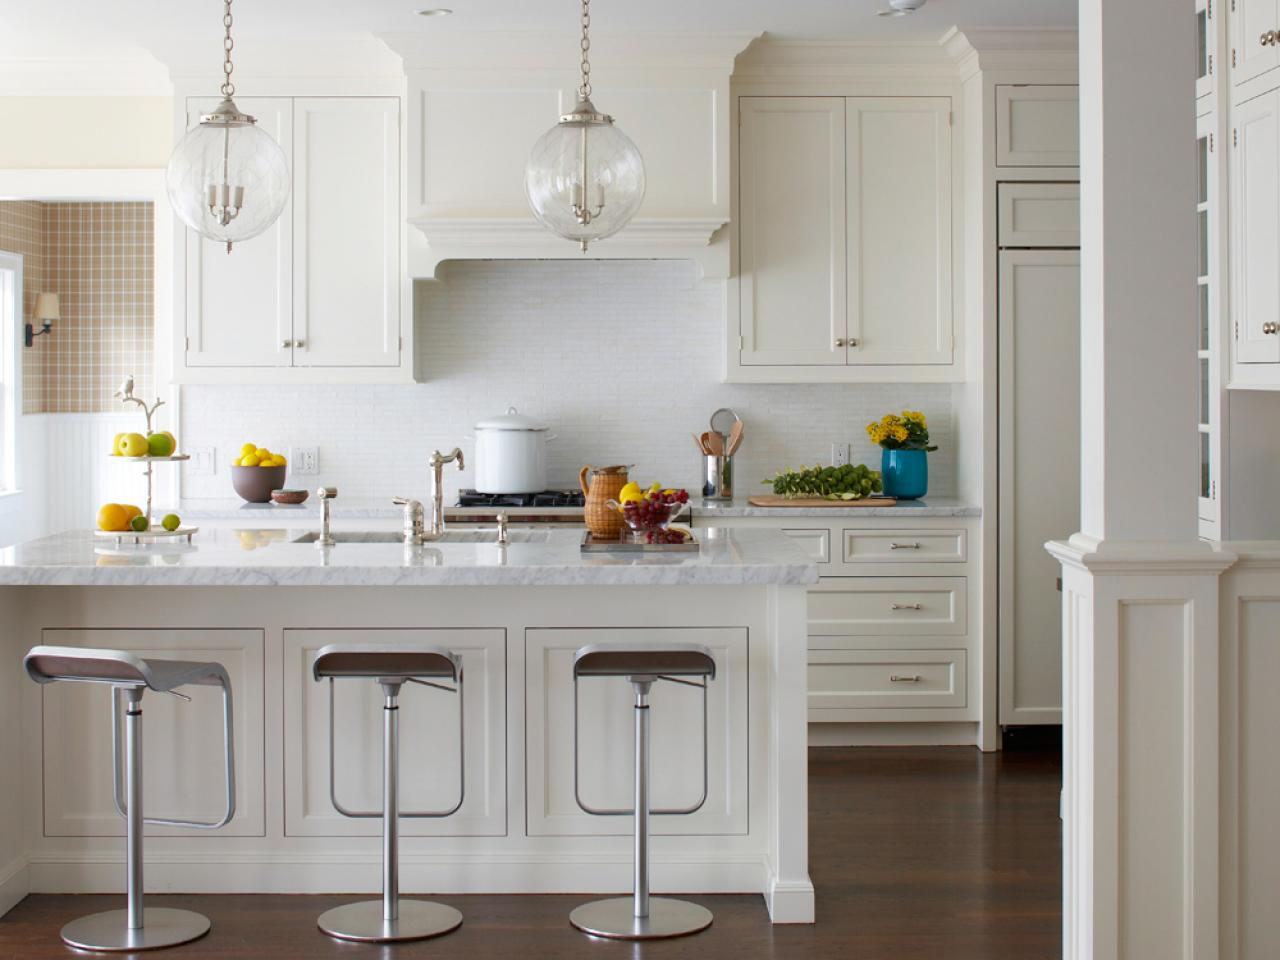 Decor Accents to Pair with an All-White Kitchen